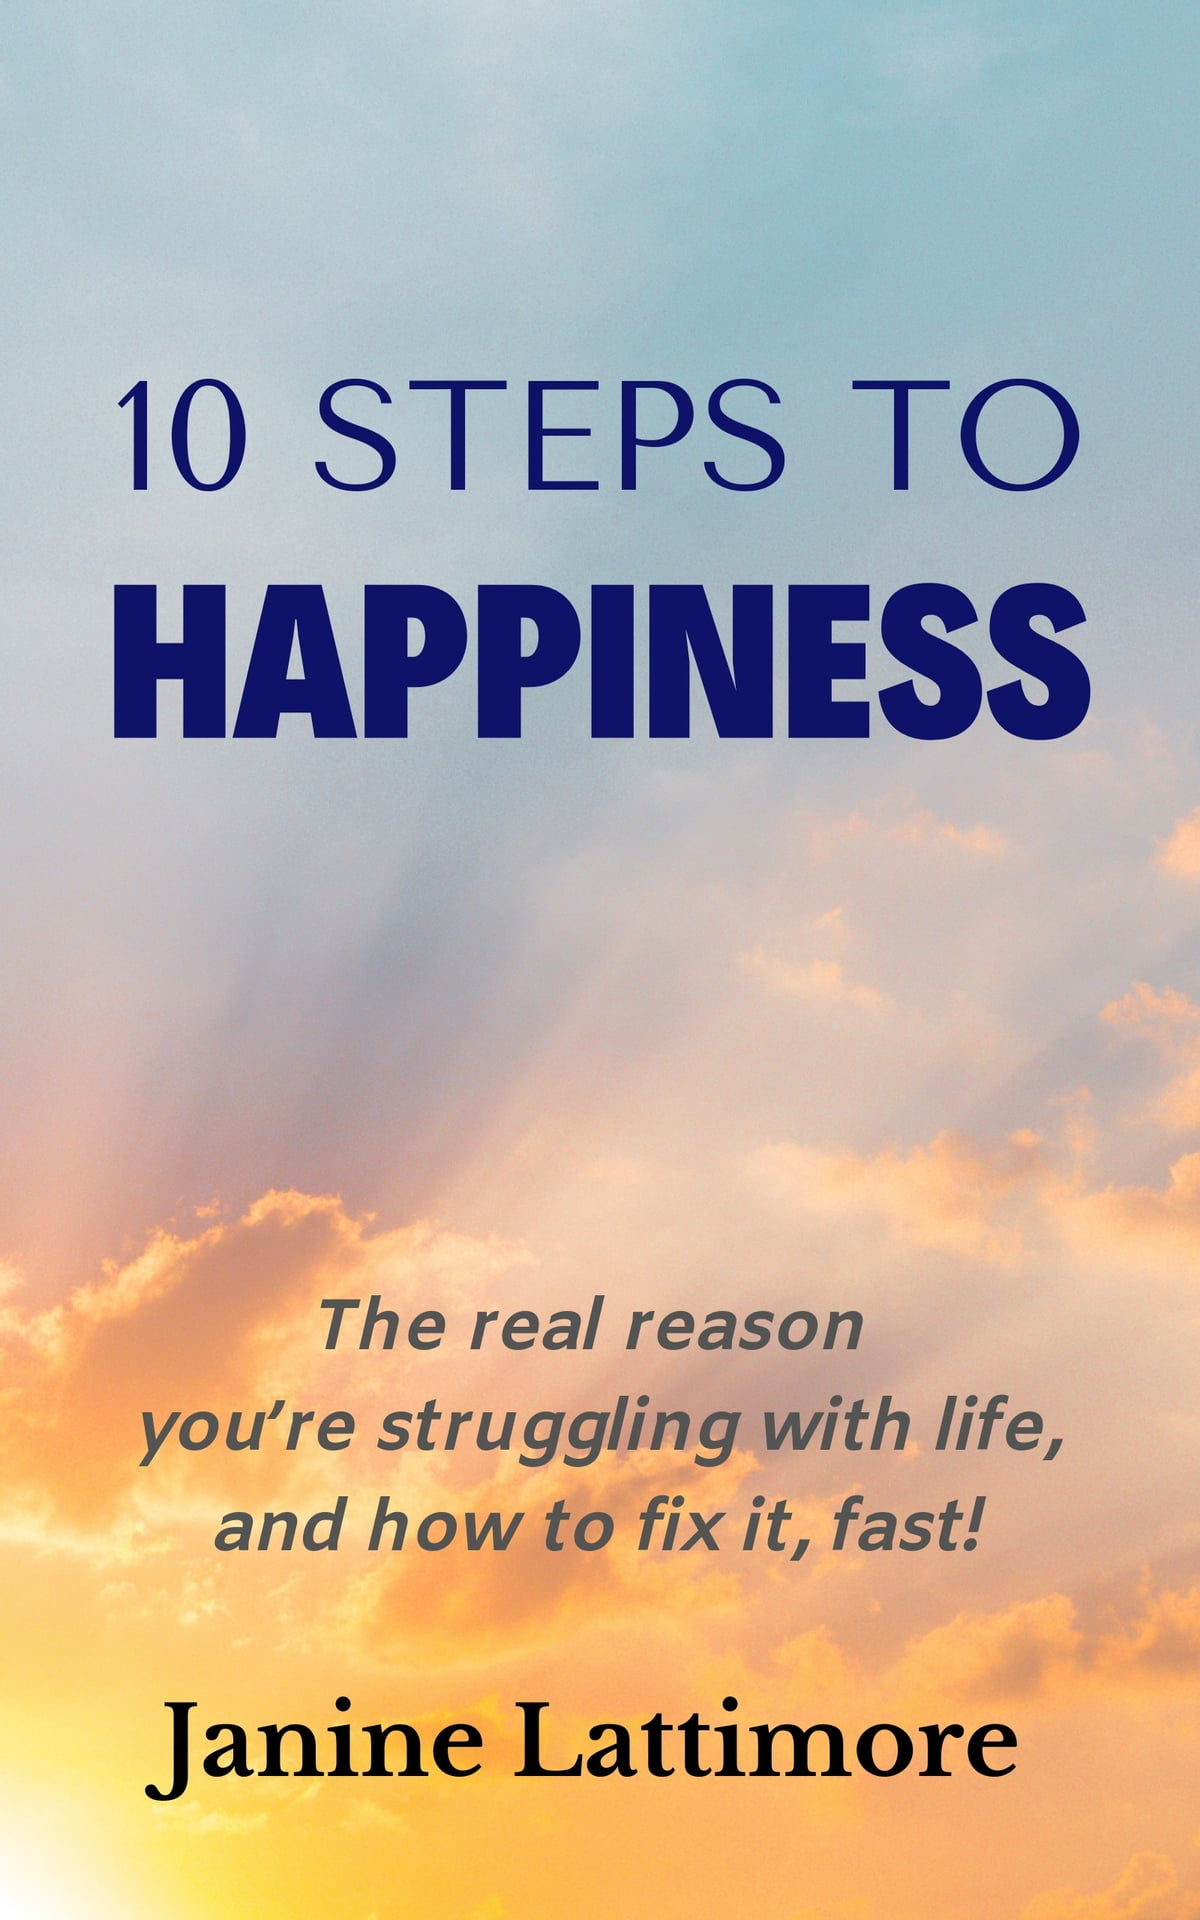 10 Steps To Happiness Ebook By Janine Lattimore